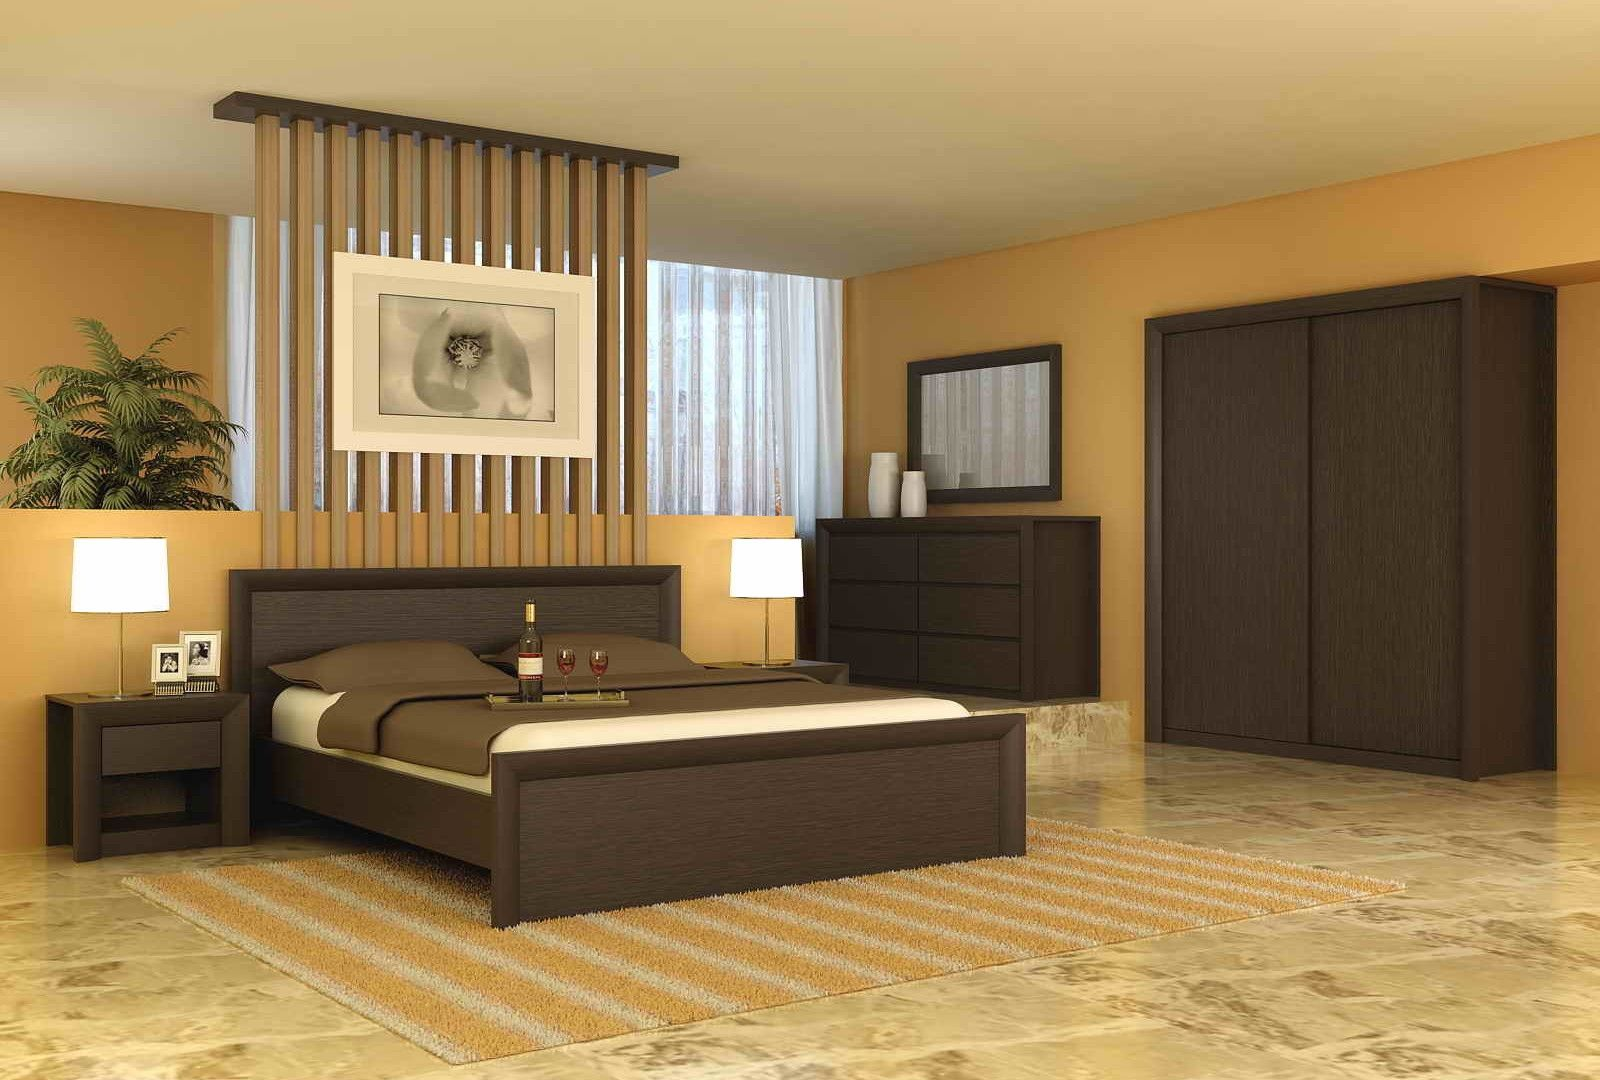 simple bedroom wall wardrobe design simple modern bedroom - Simple Bedroom Decor Ideas